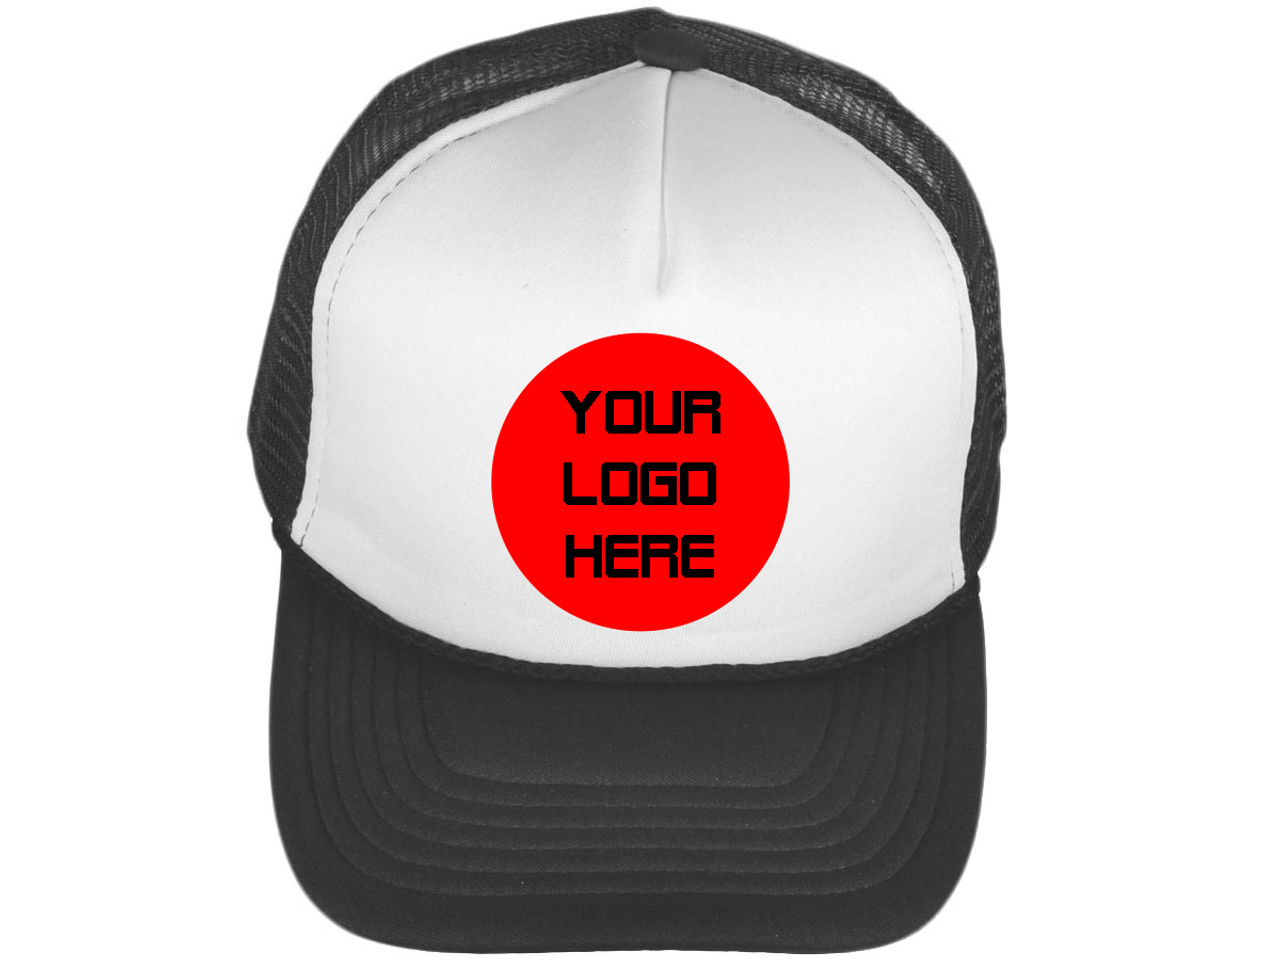 0014dd773c3bc6 Wholesale 576 pcs Custom or Personalized Hats Overseas ...